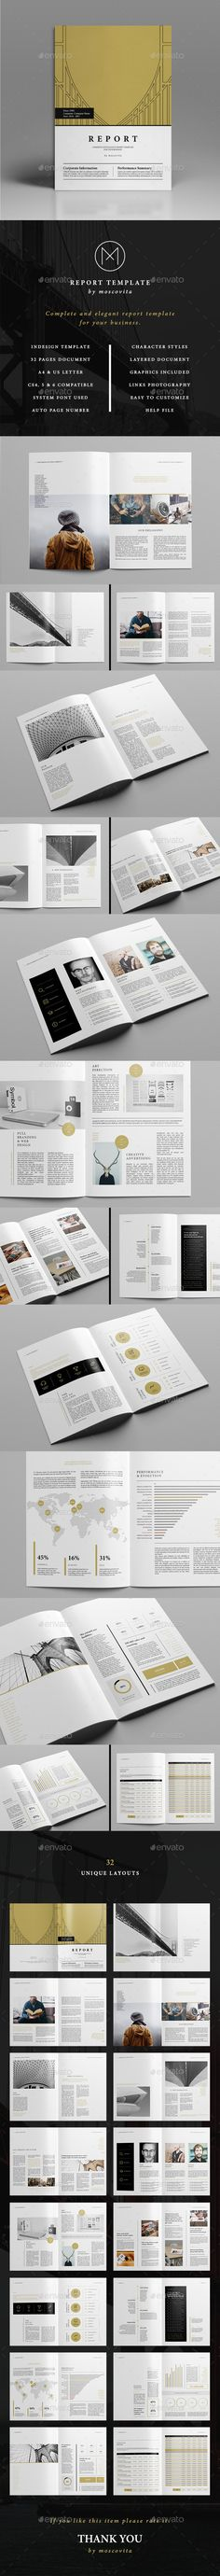 The Fashion Magazine Template Indesign Indd   Pages A